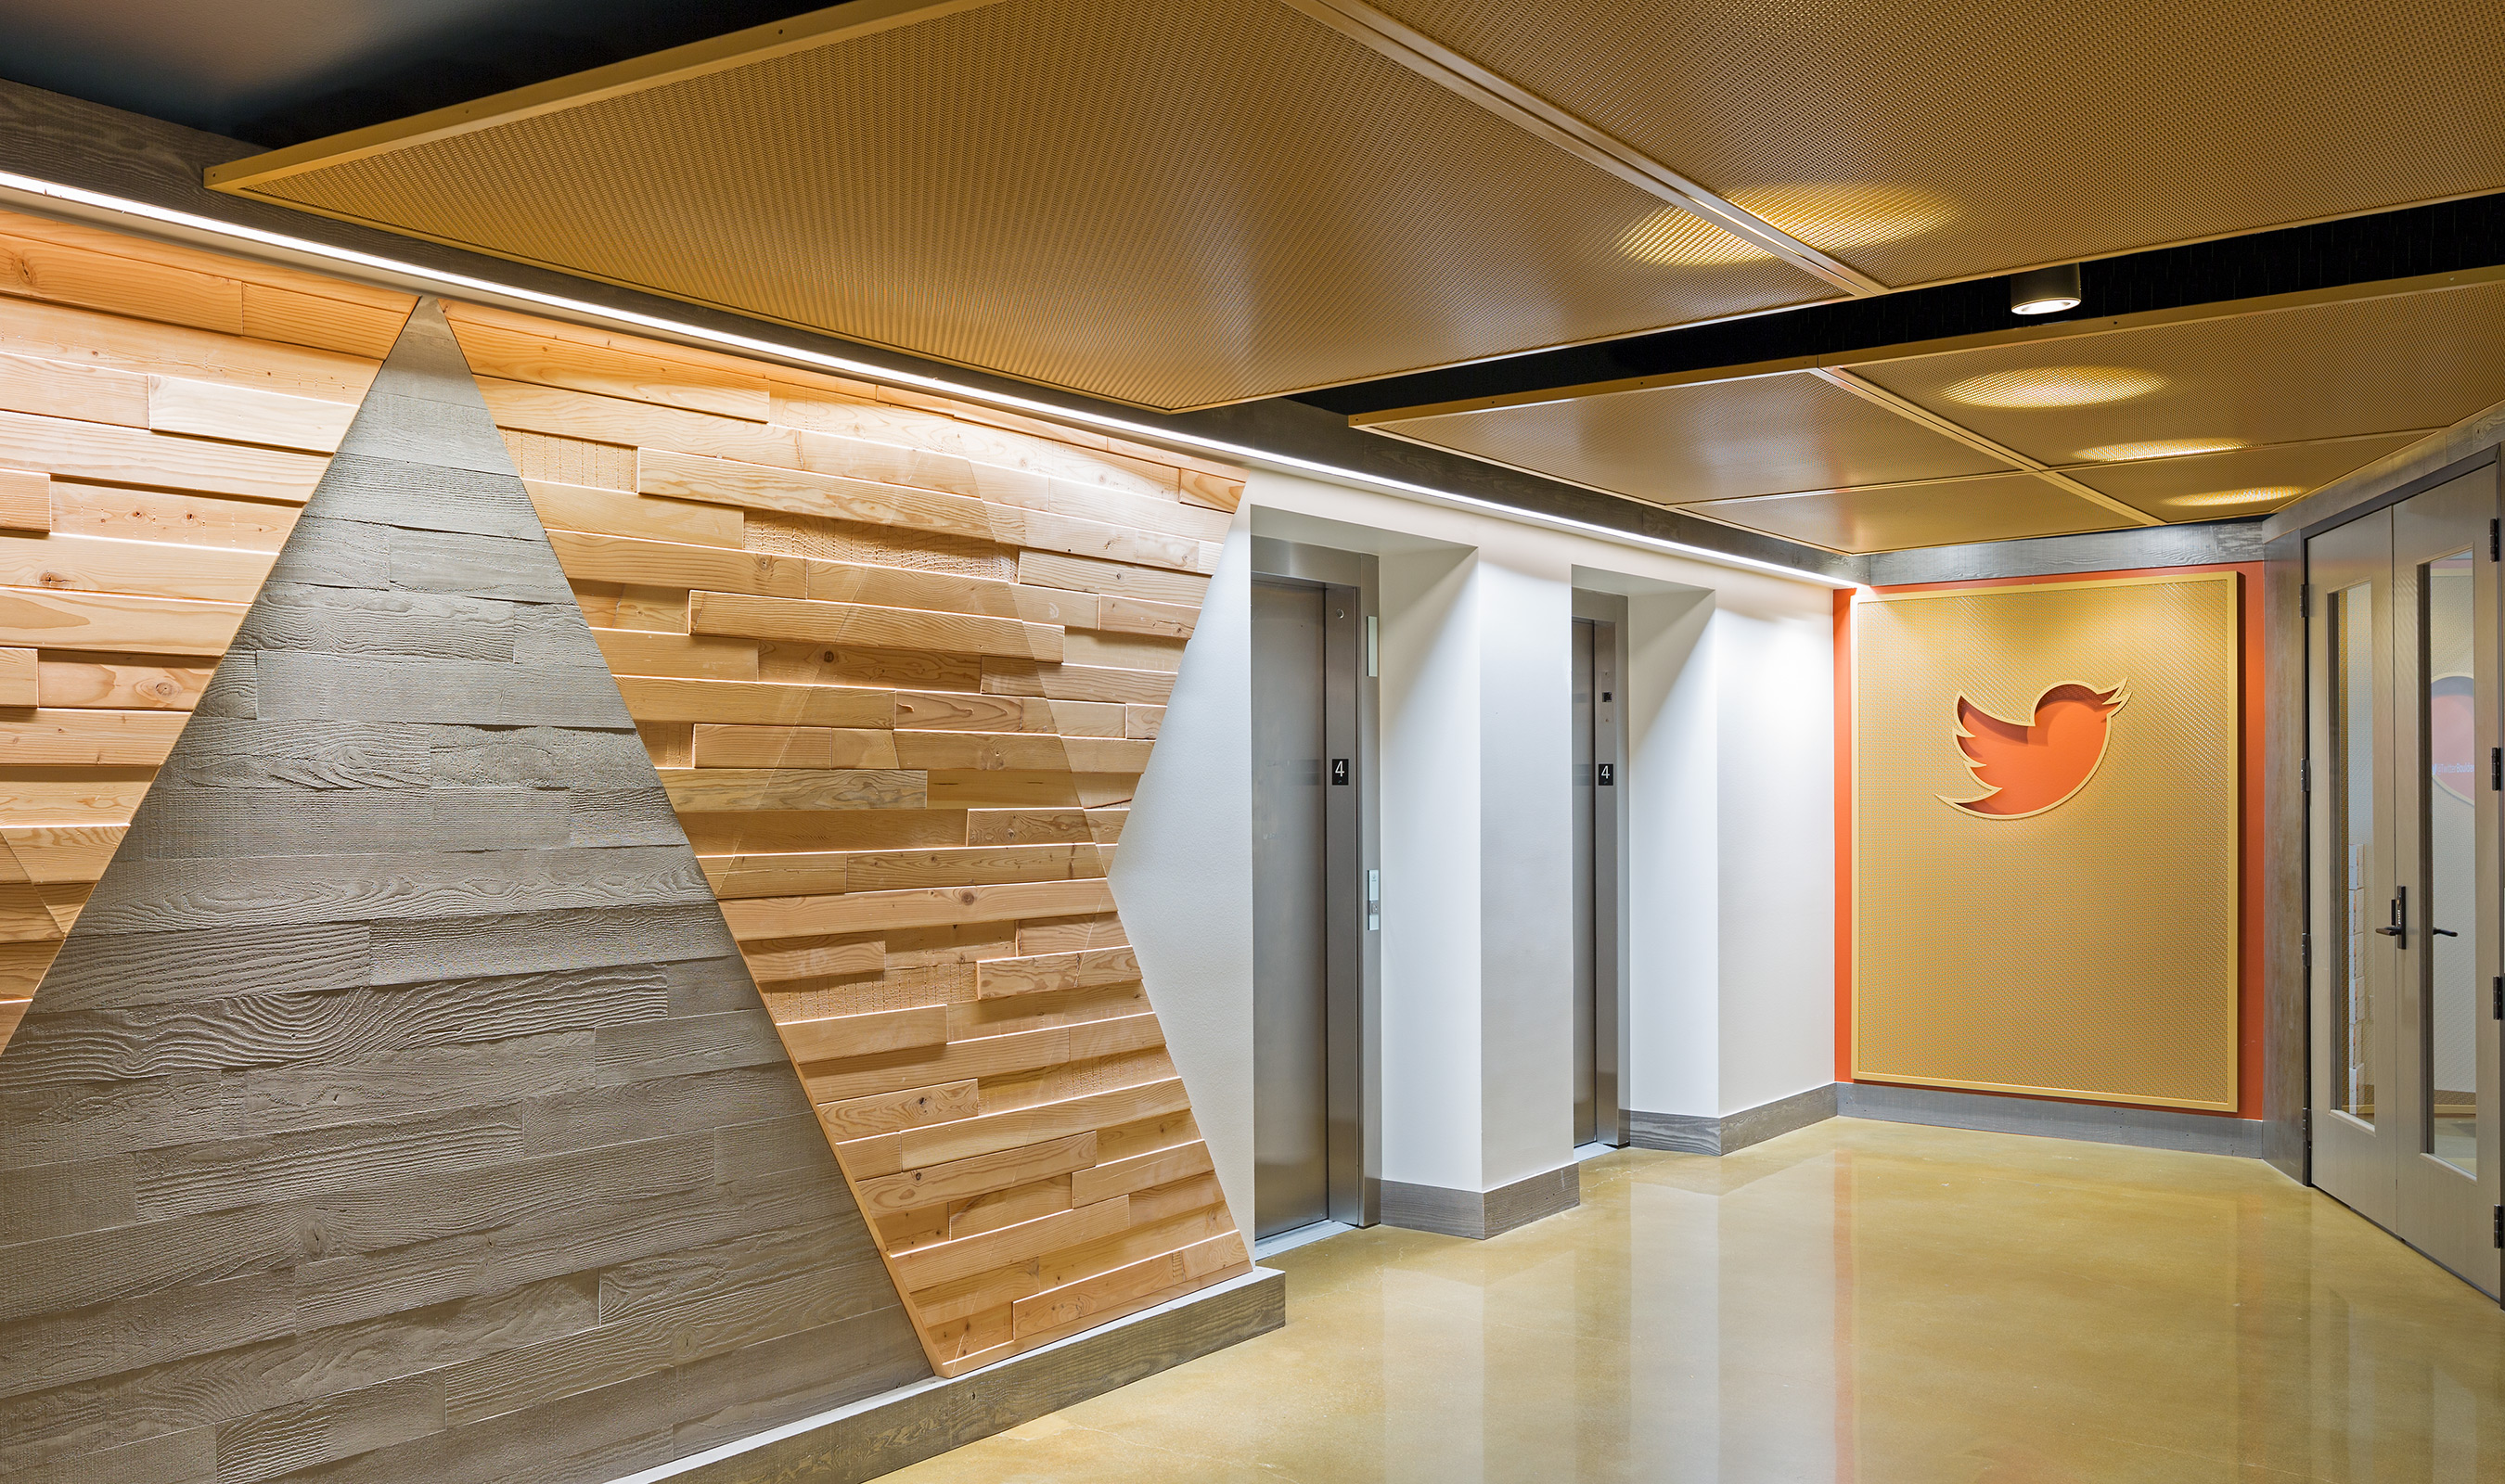 The TW-1 wall cladding located near the elevators features a laser-cutout of the iconic Twitter logo.